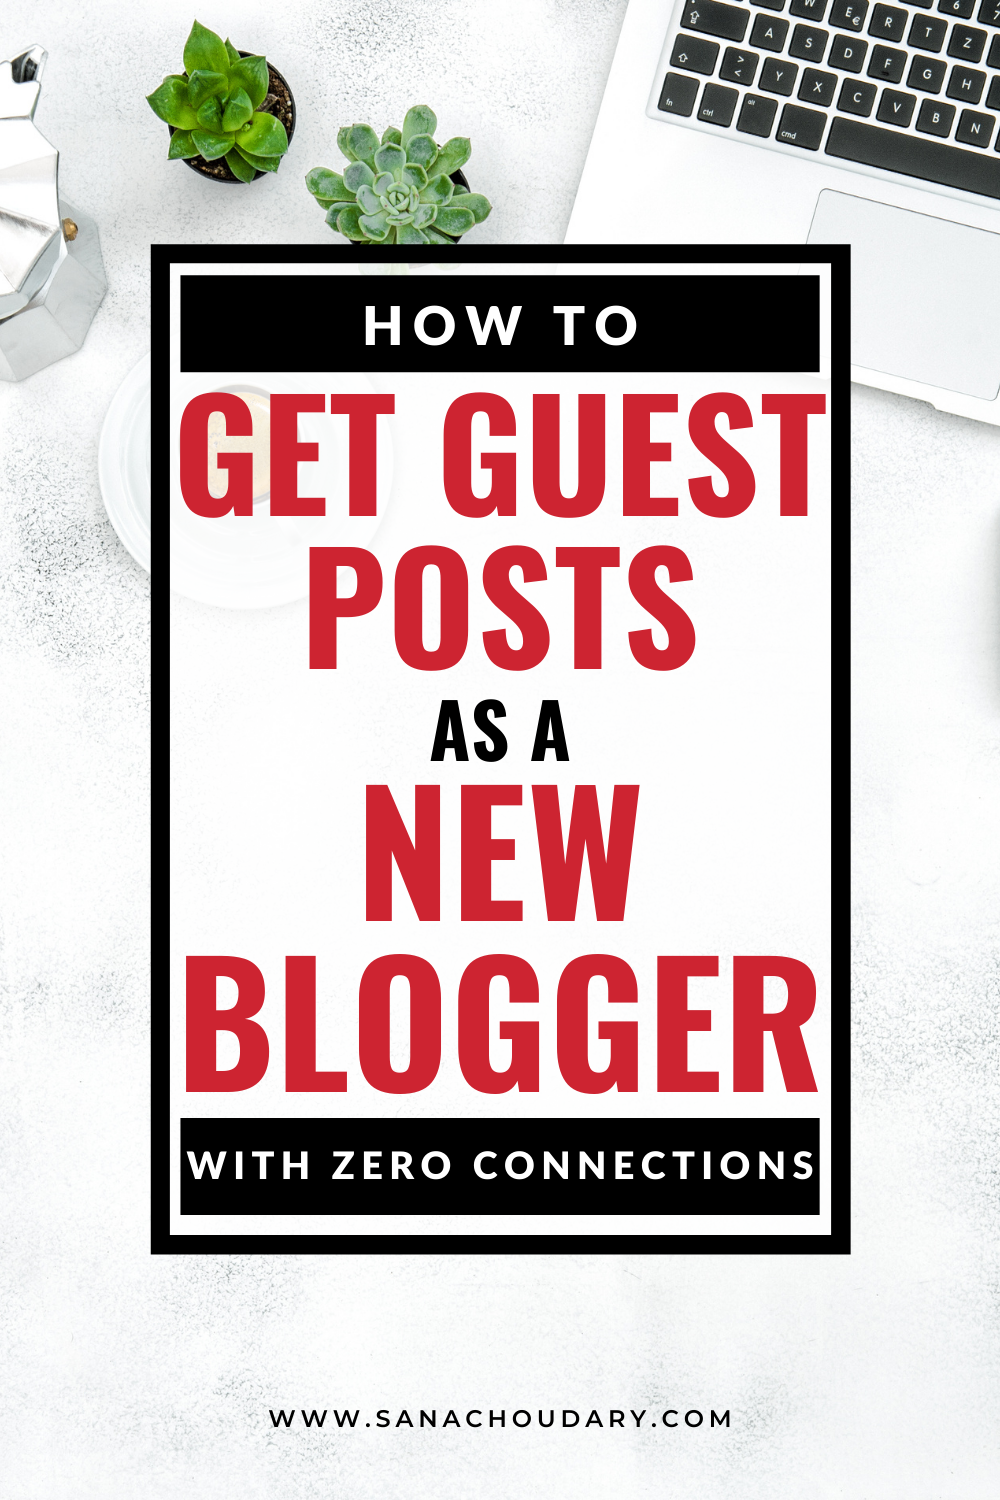 How to Get Guest Posts as a New Blogger with ZERO connections